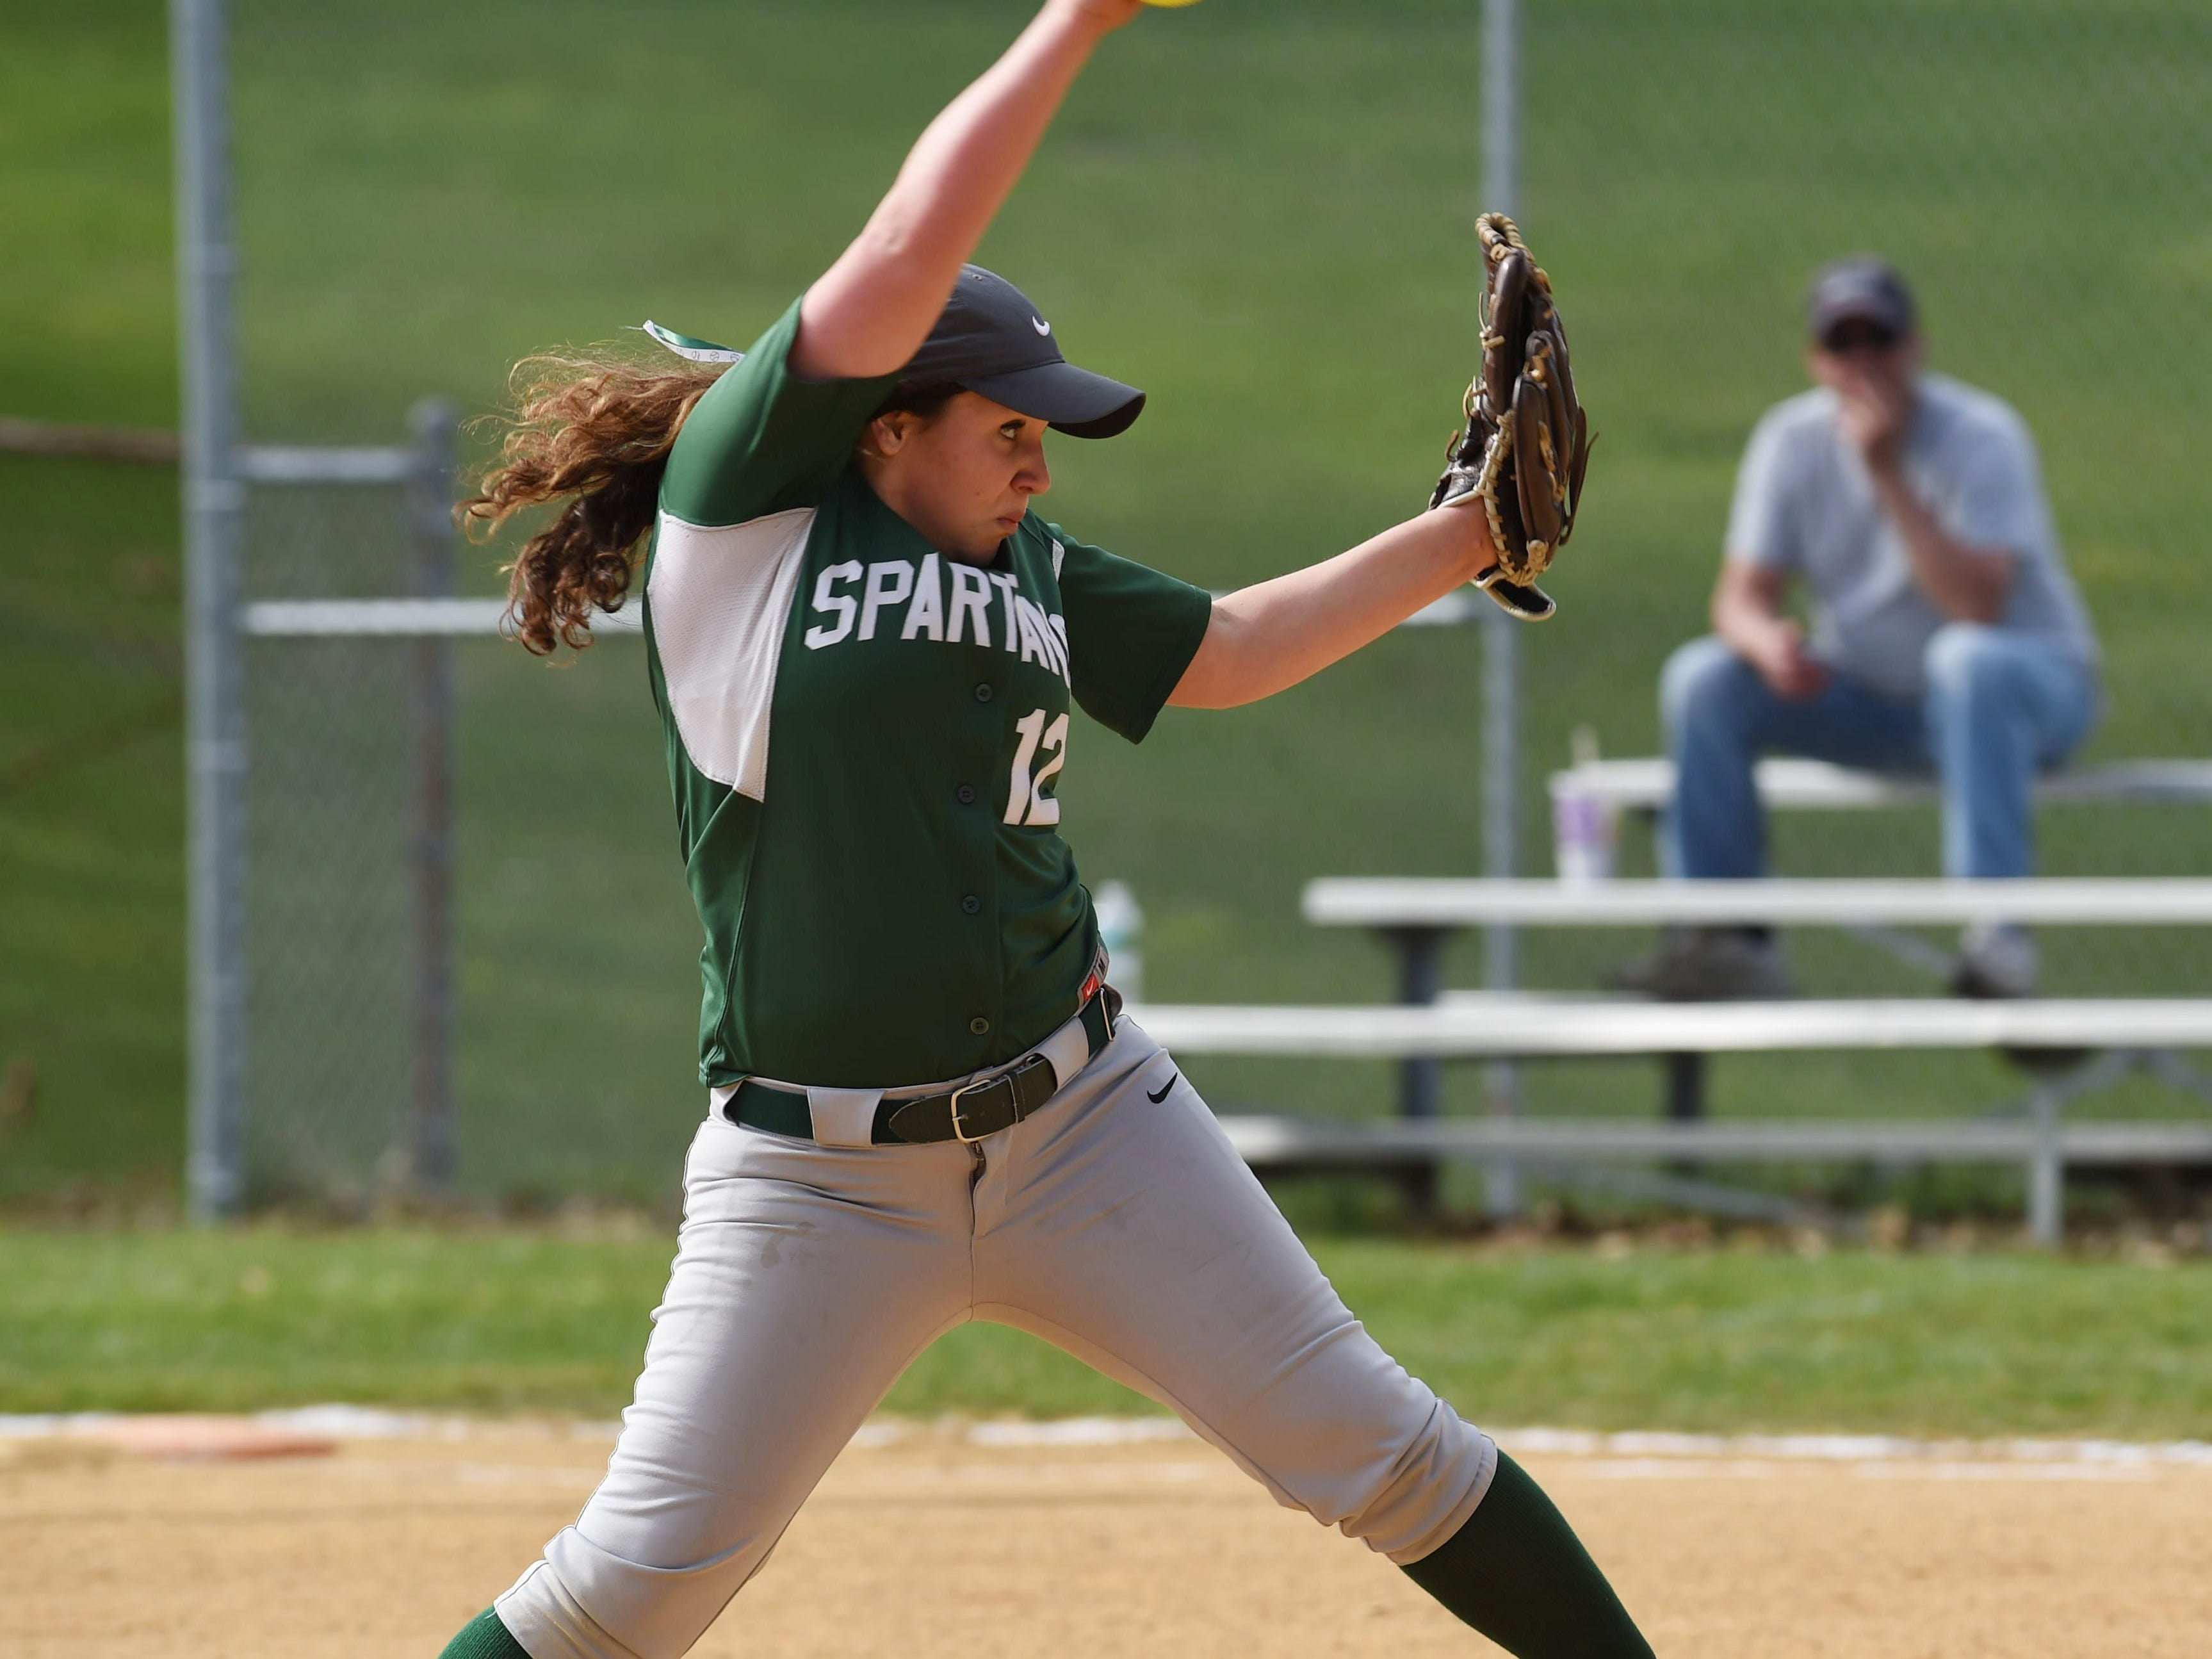 Spackenkill's Gabi Mastrantuono winds up a pitch during an April 18 game against Webutuck.